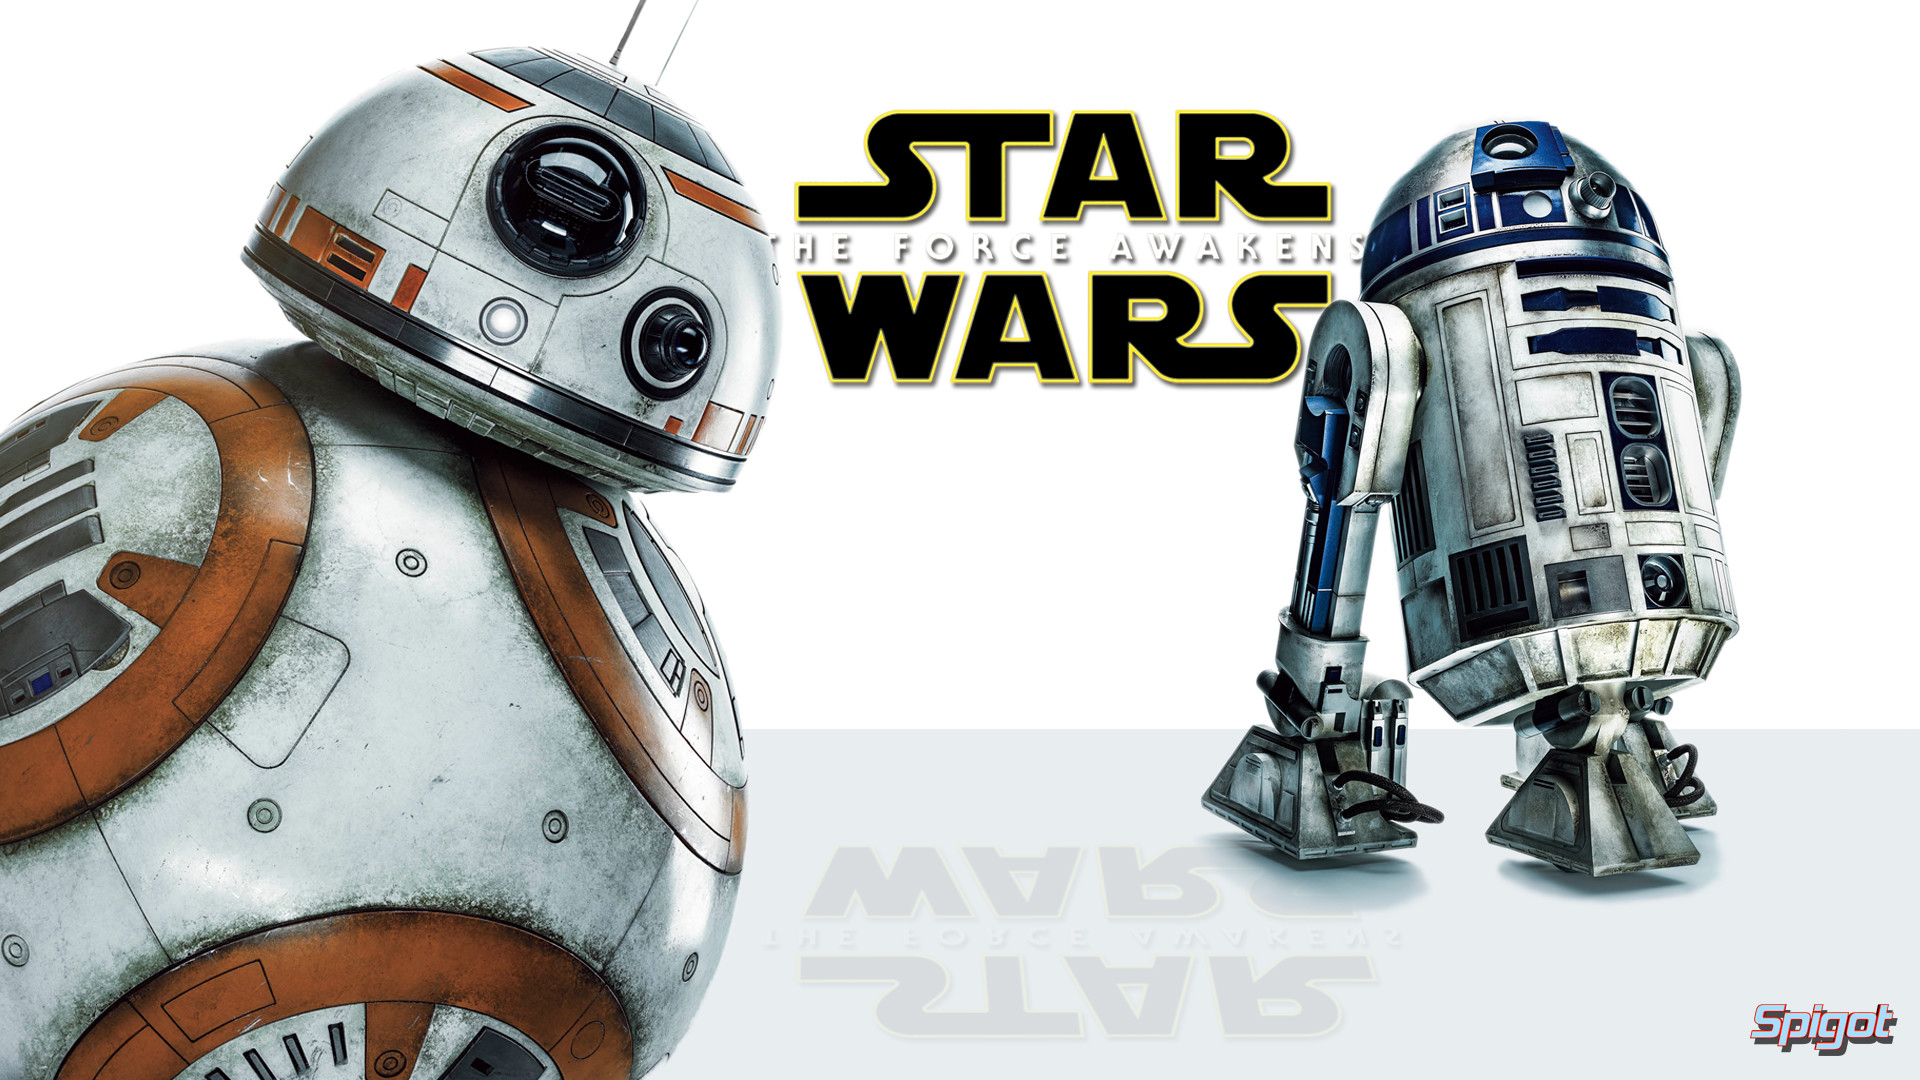 55 Star Wars R2 D2 Cool Space Backgrounds On Wallpapersafari